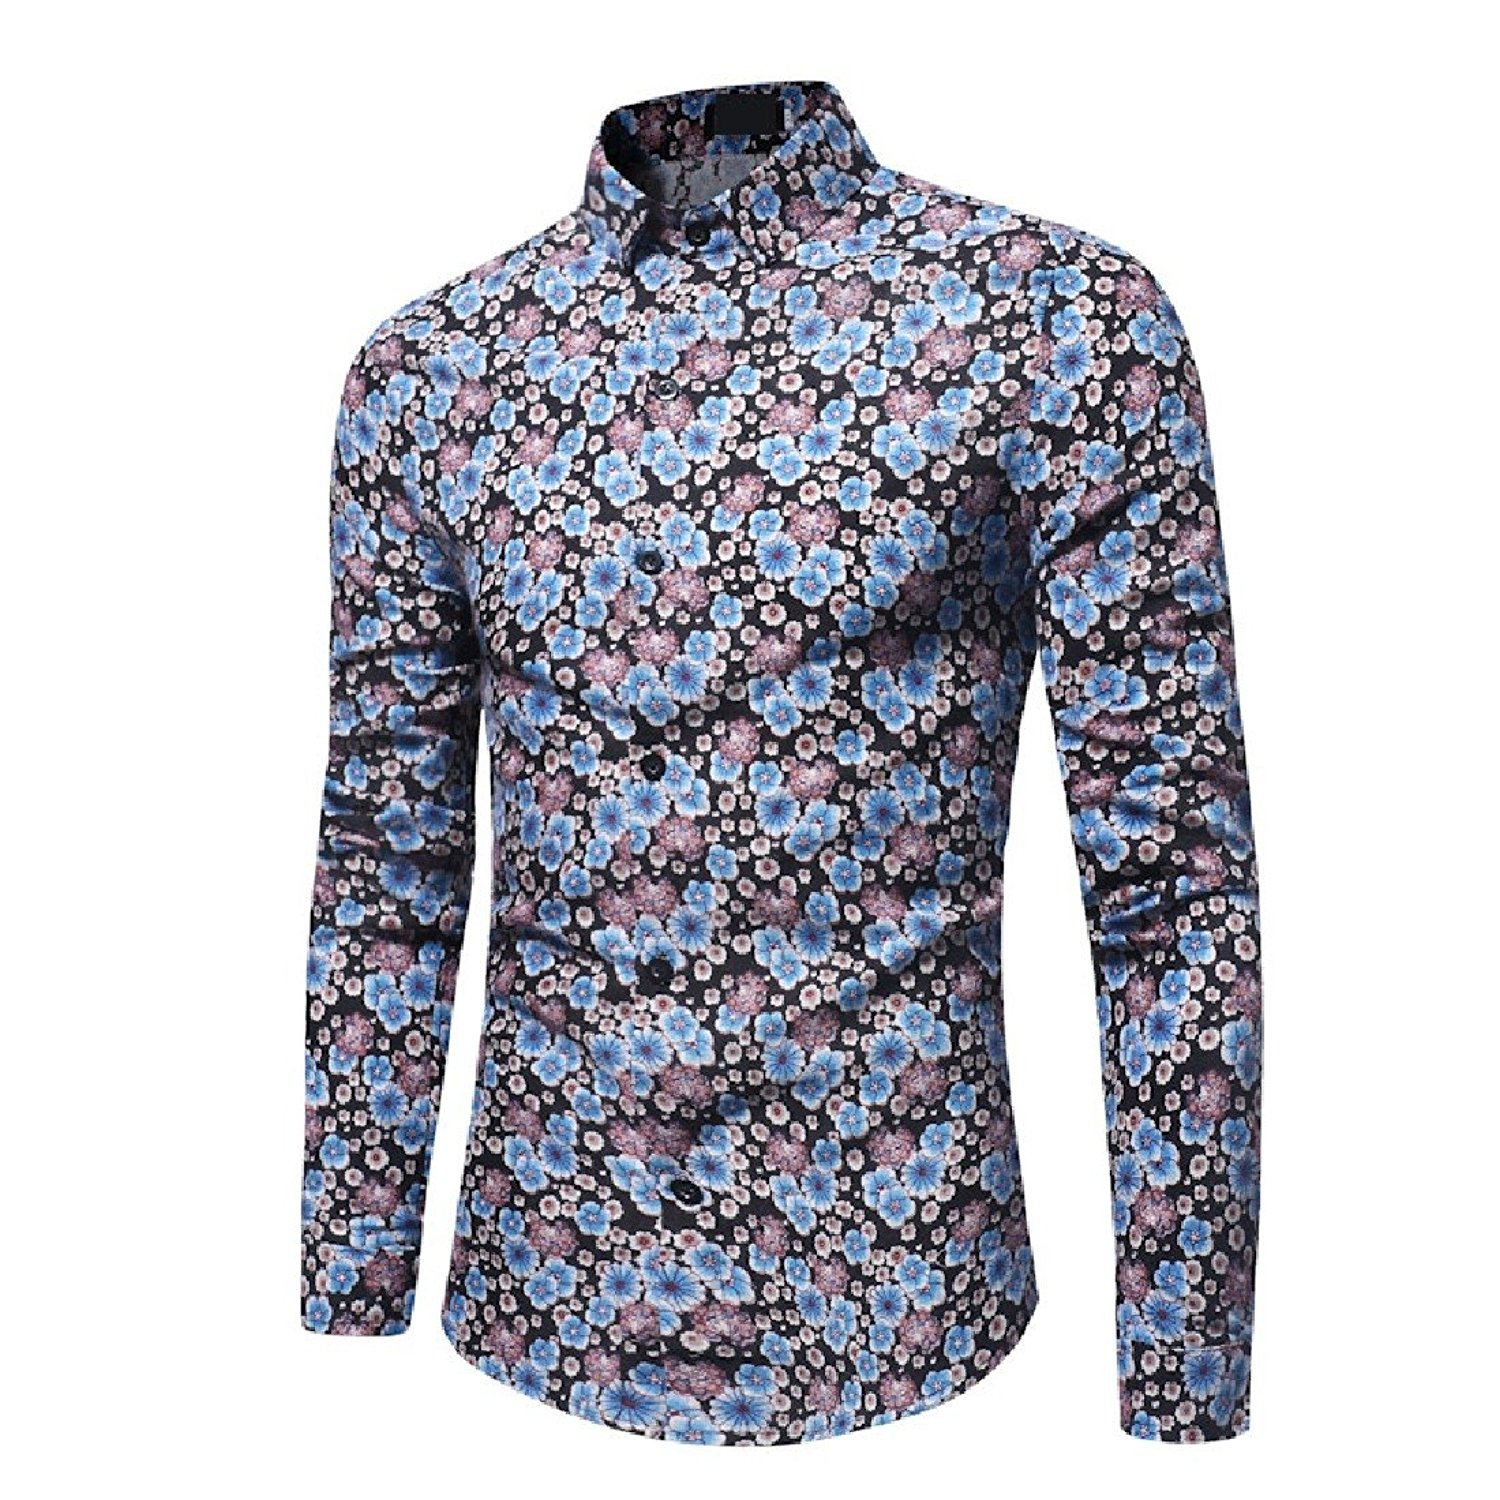 d9471e131e0 Get Quotations · Zimaes-Men Casual Peaked Collar Buttoned Bussiness Floral  Dress Shirts